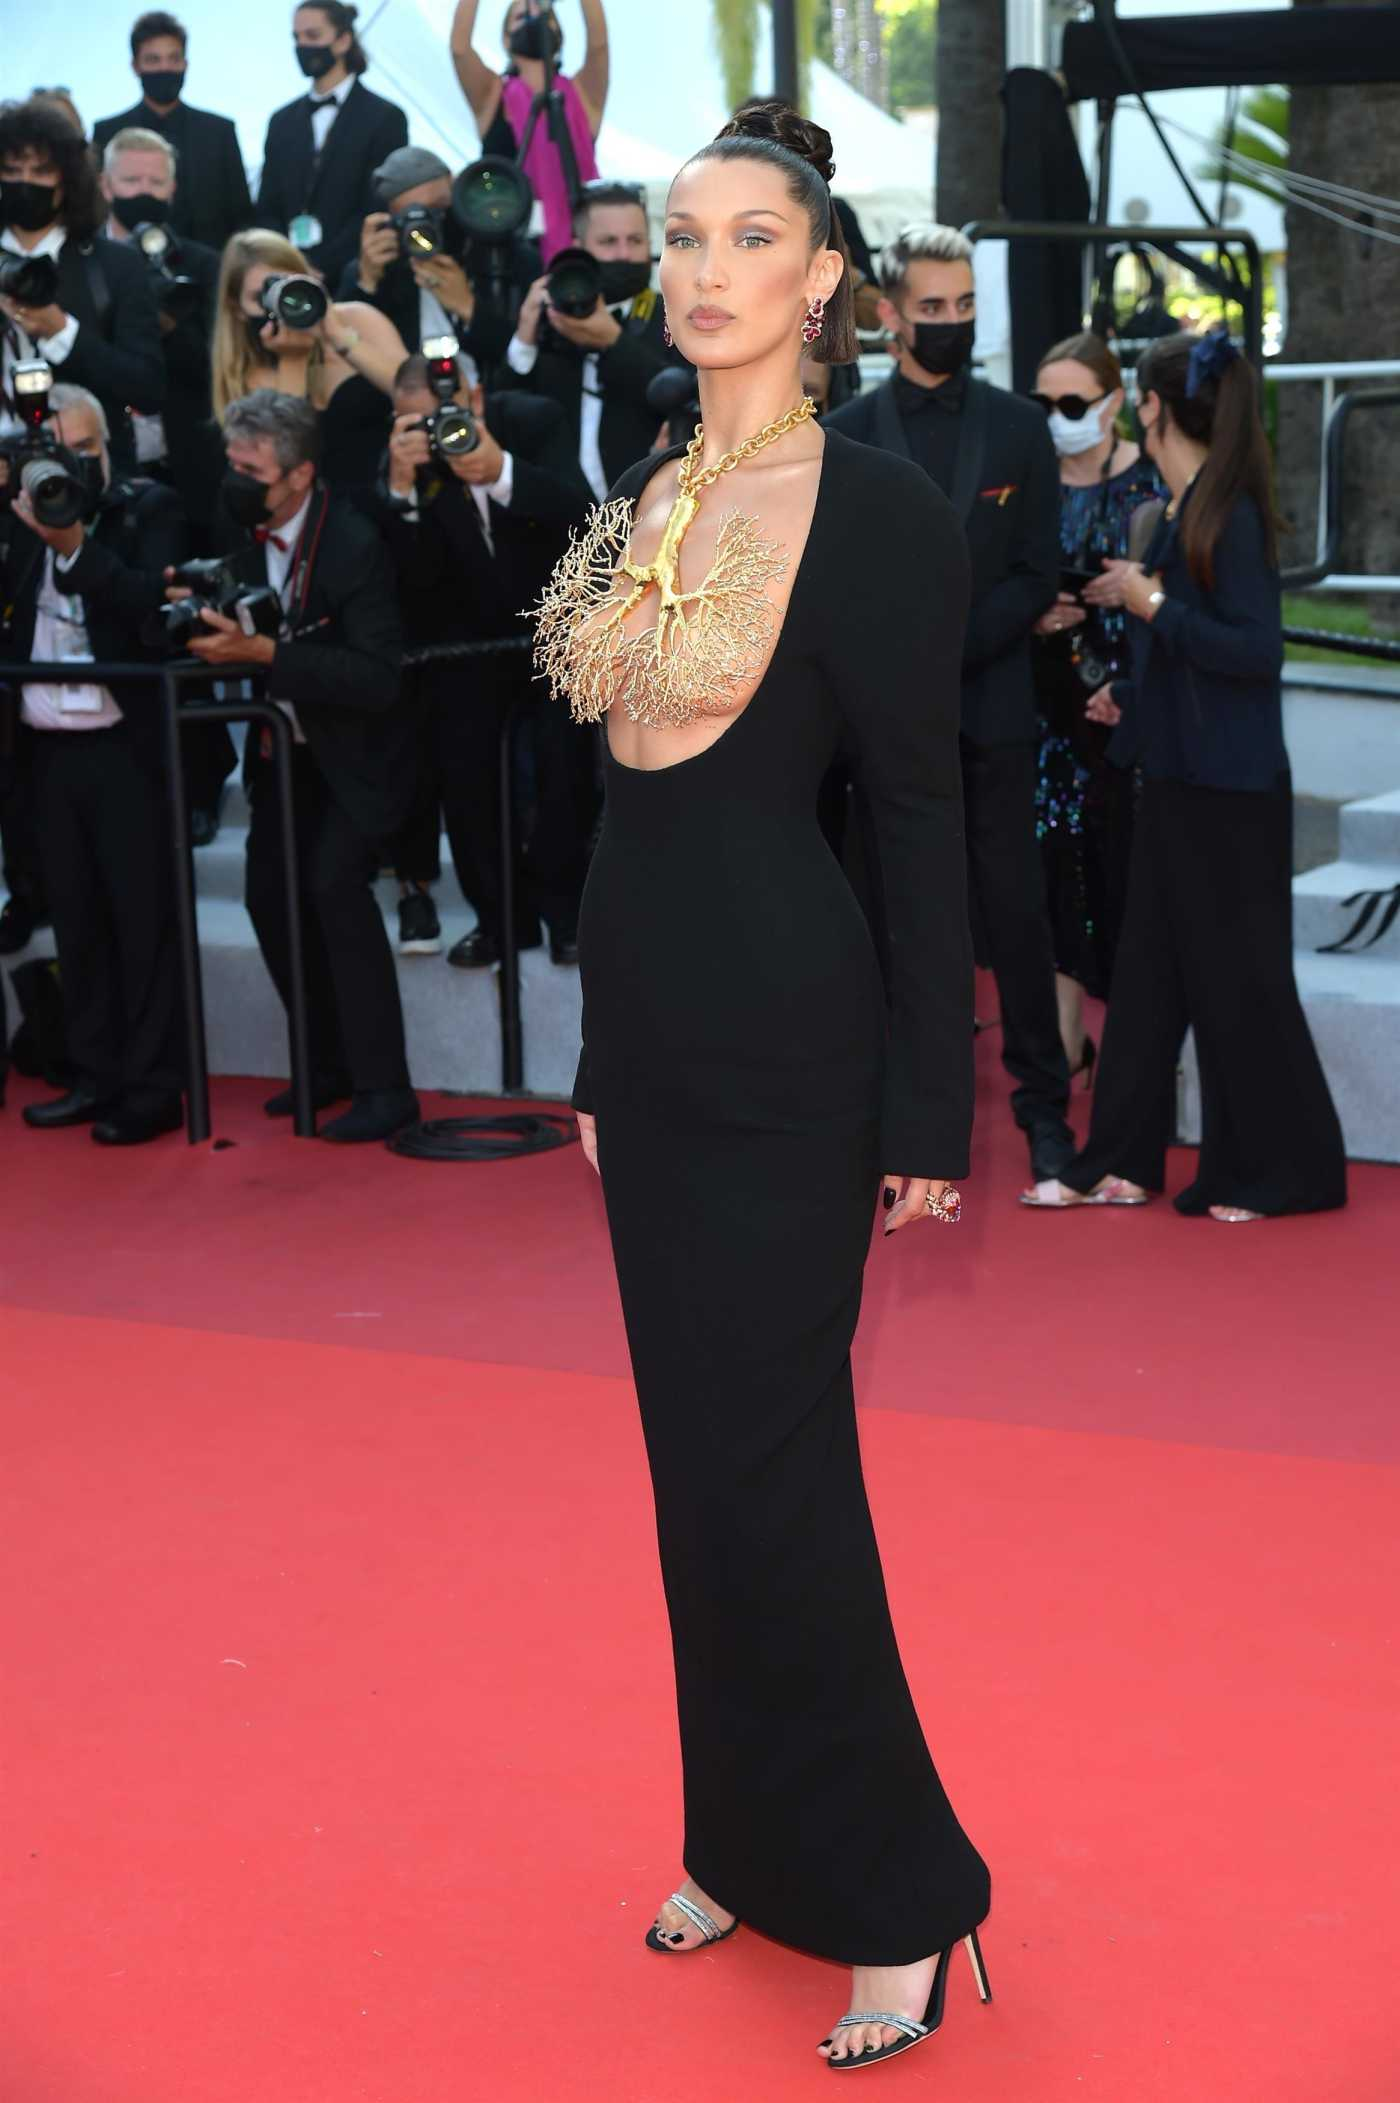 Bella Hadid Attends Tre Piani Screening During the 74th Annual Cannes Film Festival in Cannes 07/11/2021